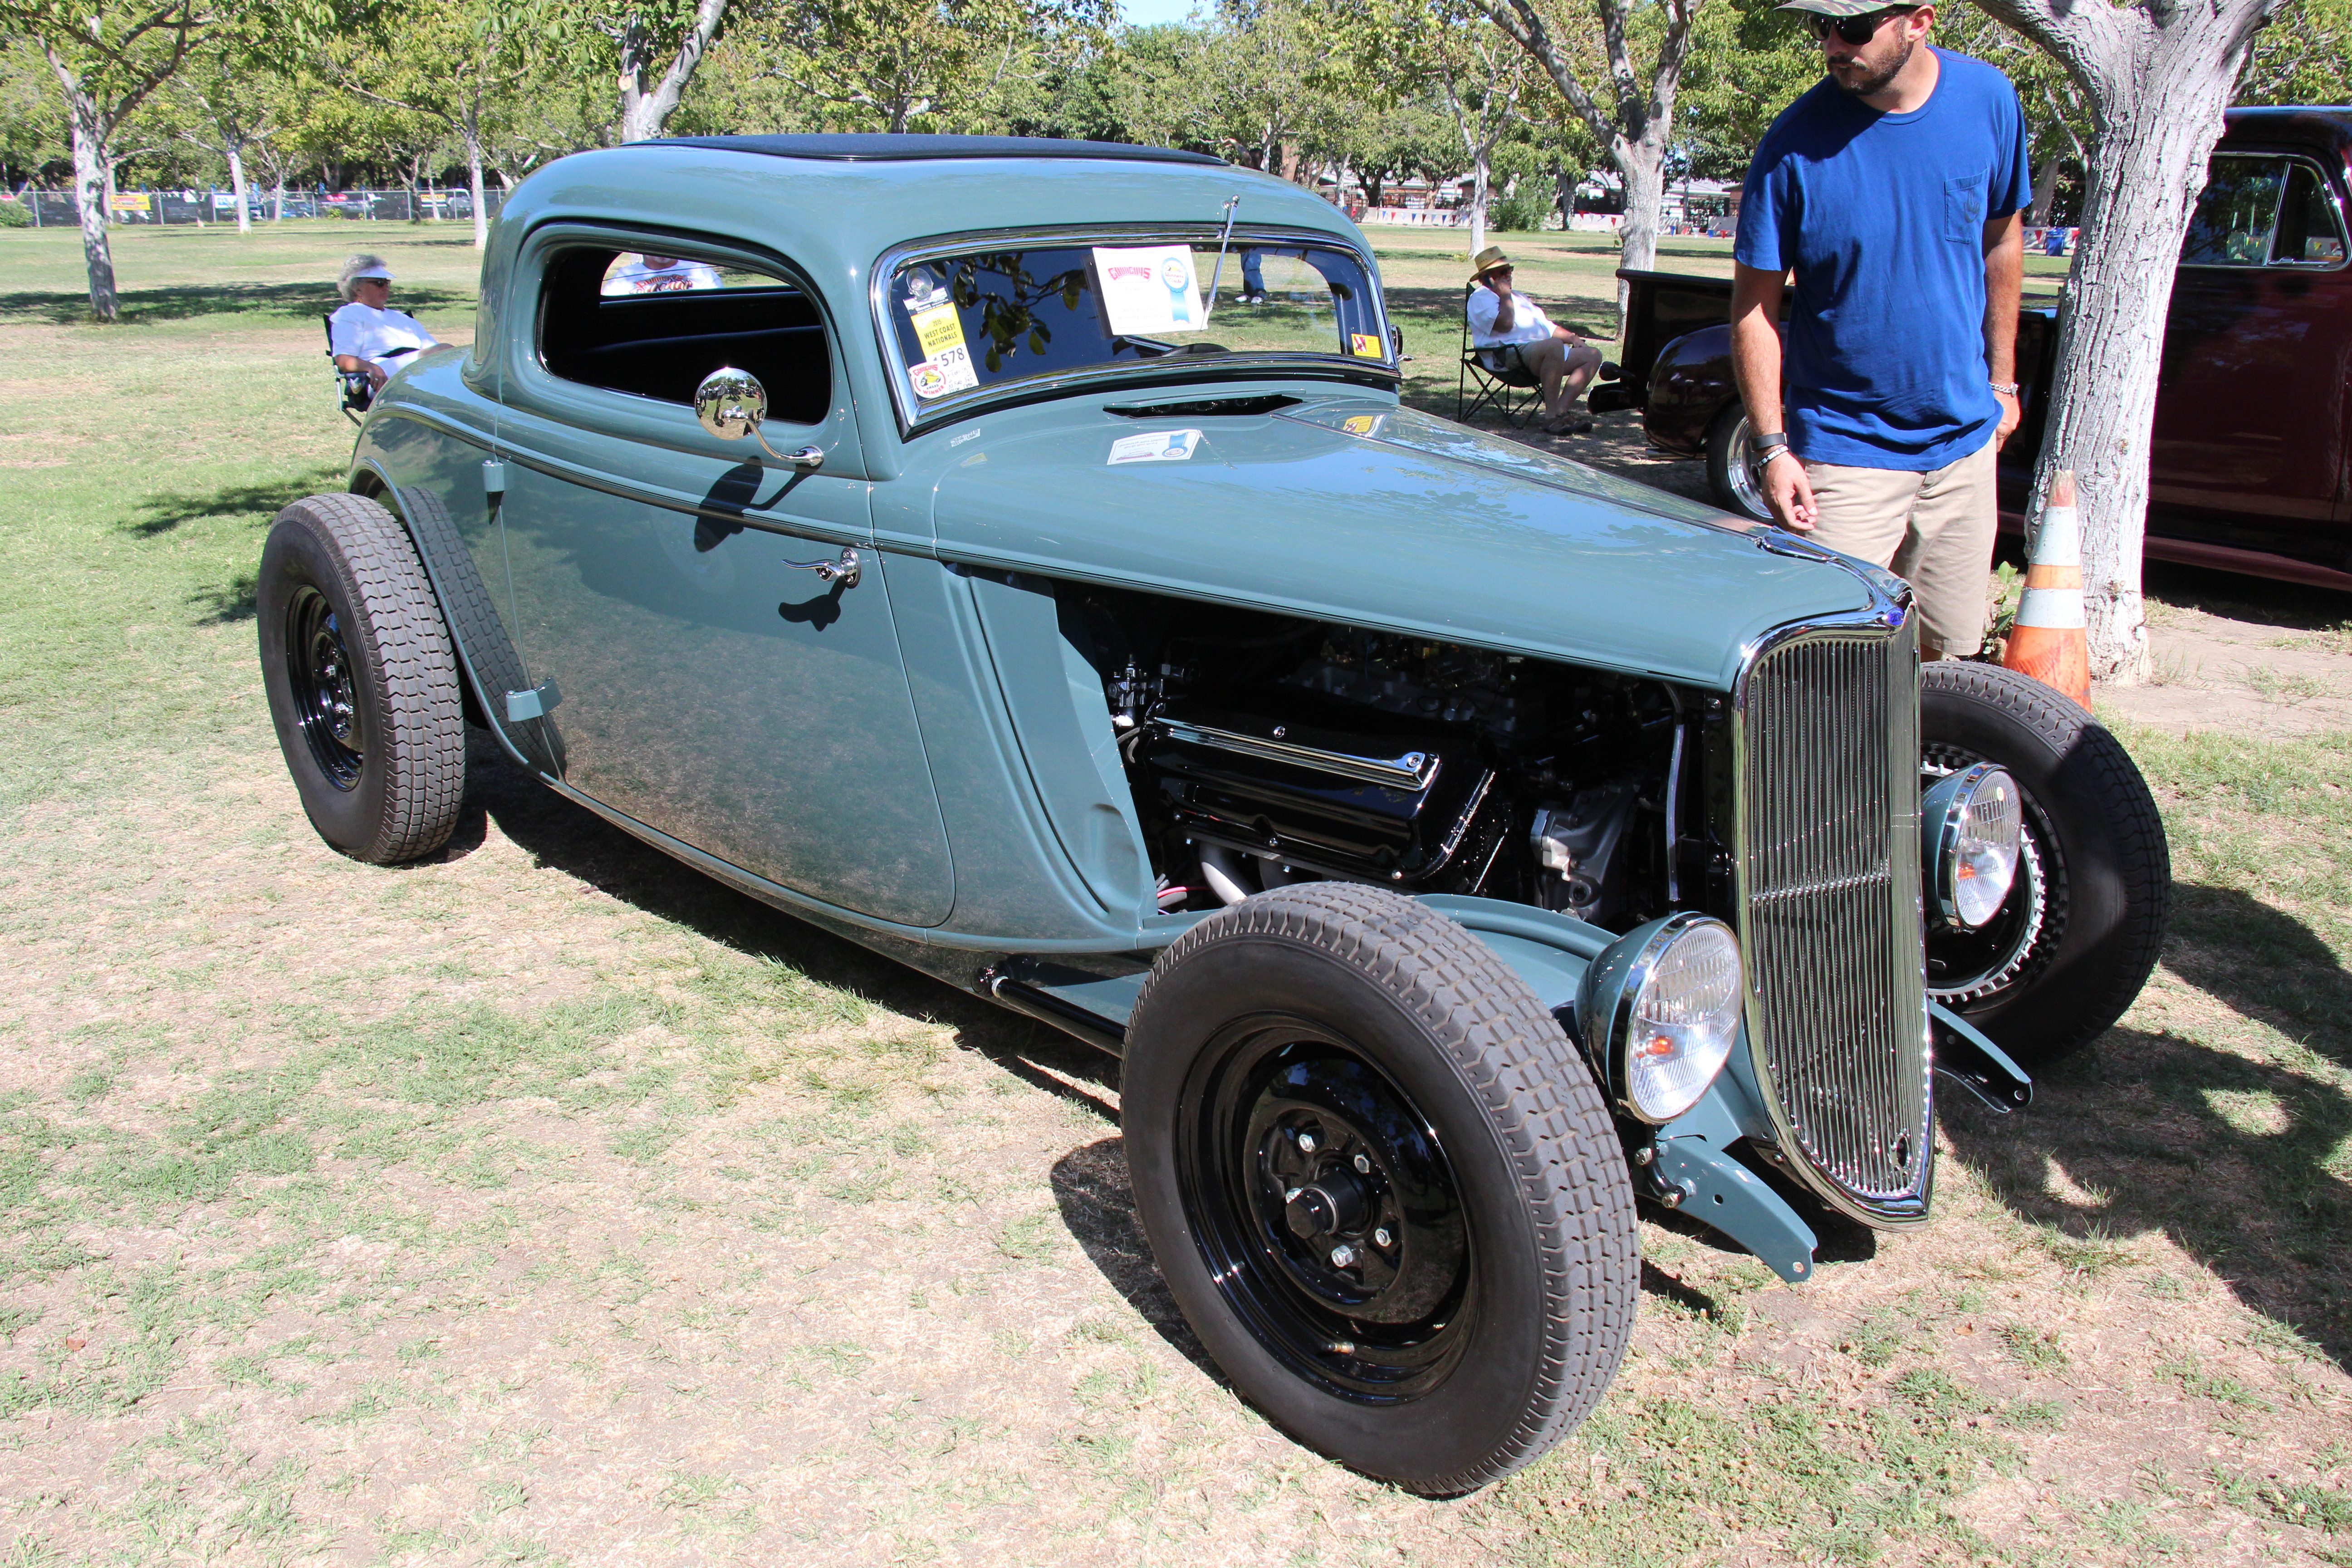 File:1934 Ford 3 window Coupe Hot Rod (20348174733).jpg - Wikimedia ...